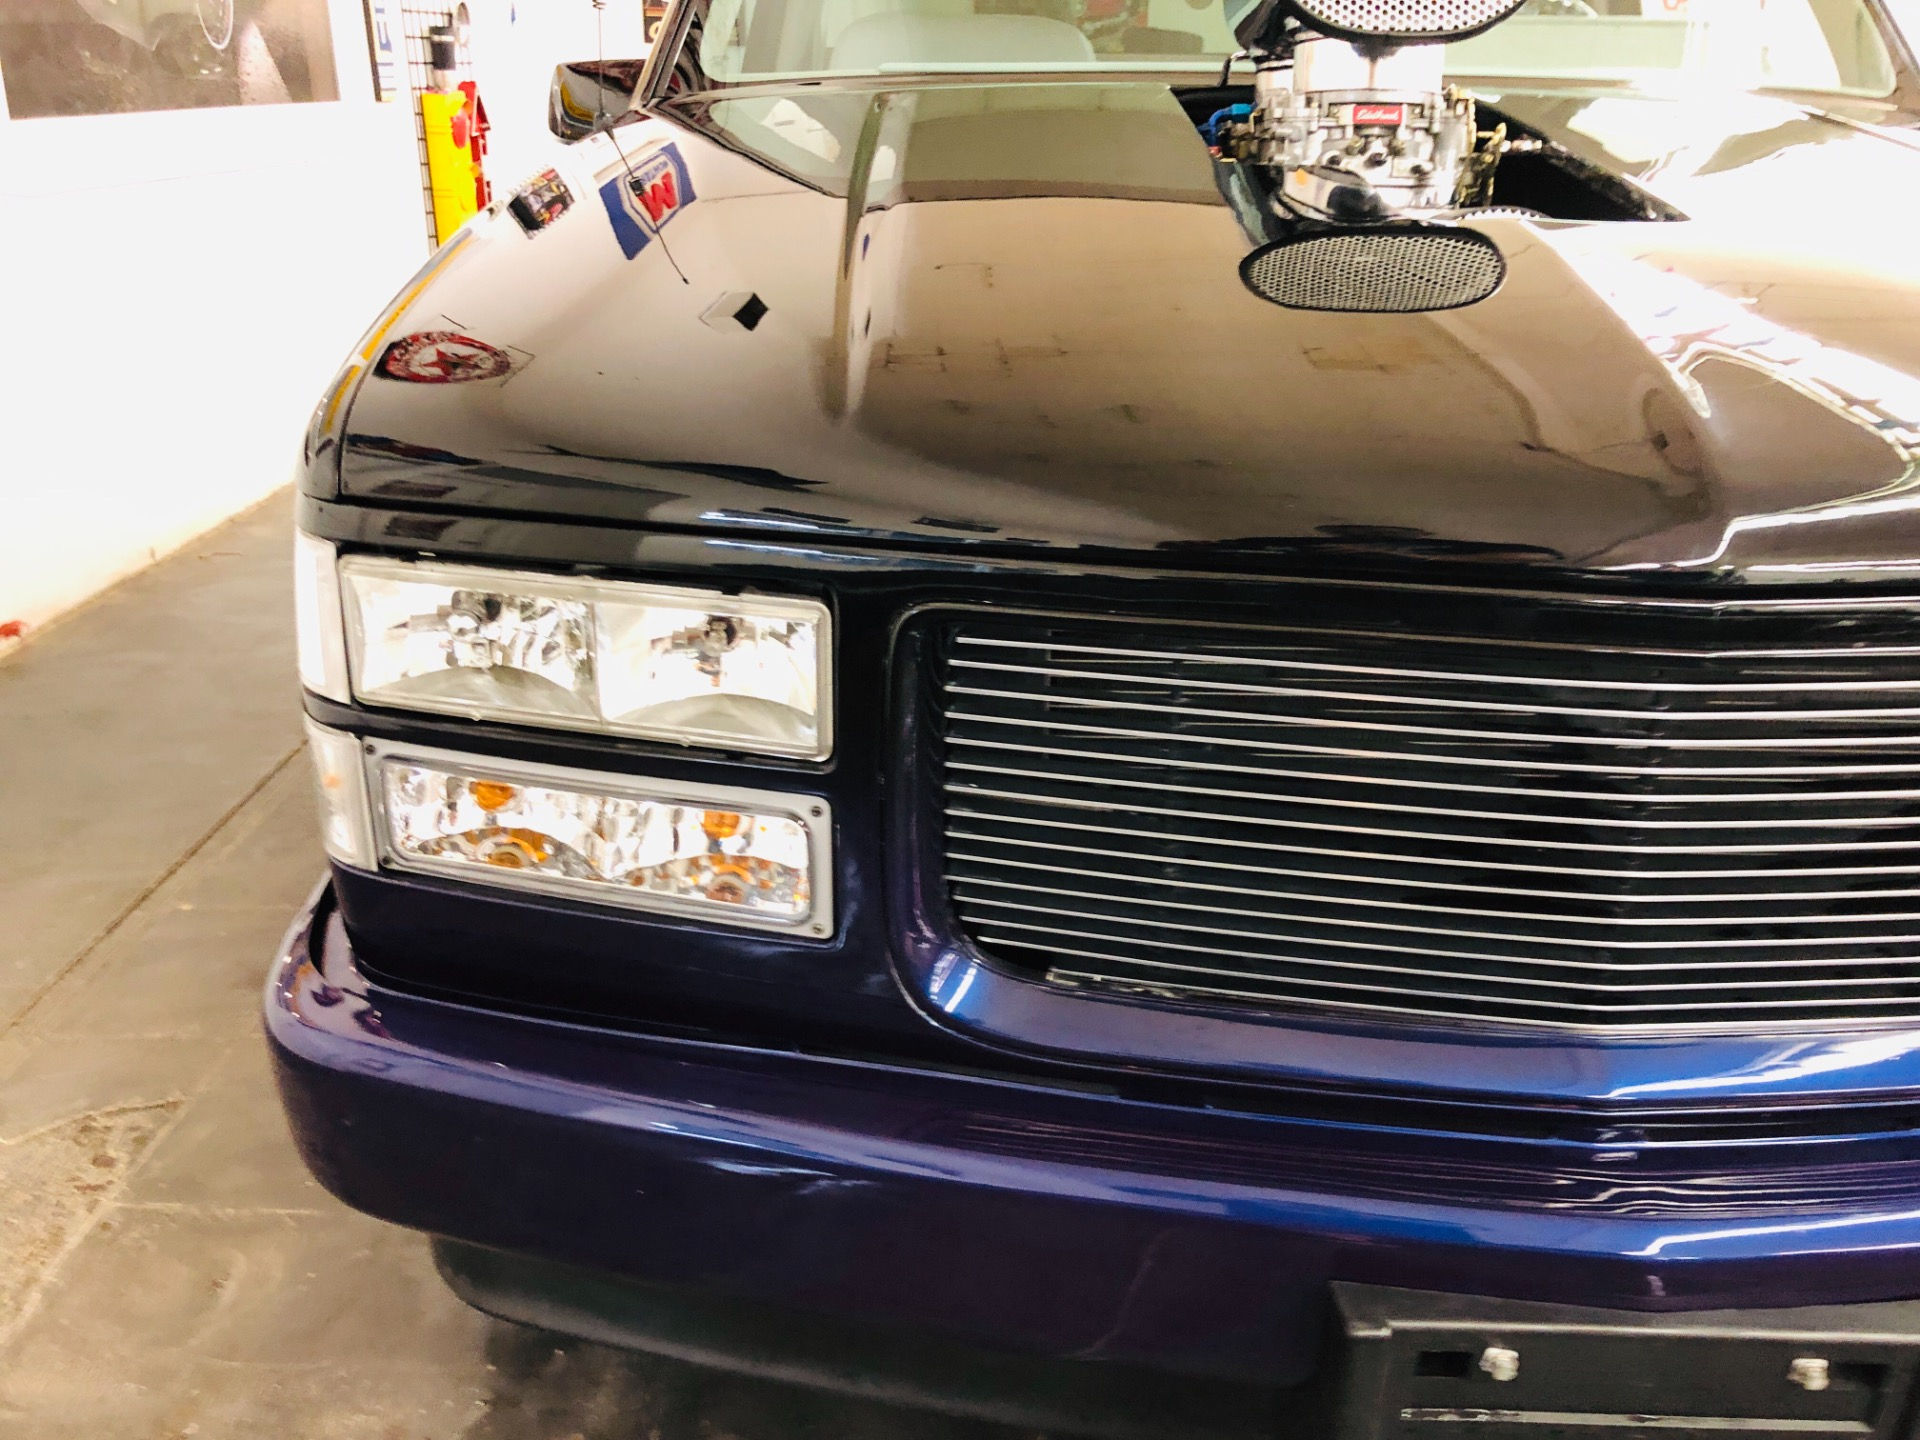 Used 1993 GMC Pickup -CUSTOM BUILT PRO STREET SUPERCHARGED SHOW TRUCK- | Mundelein, IL